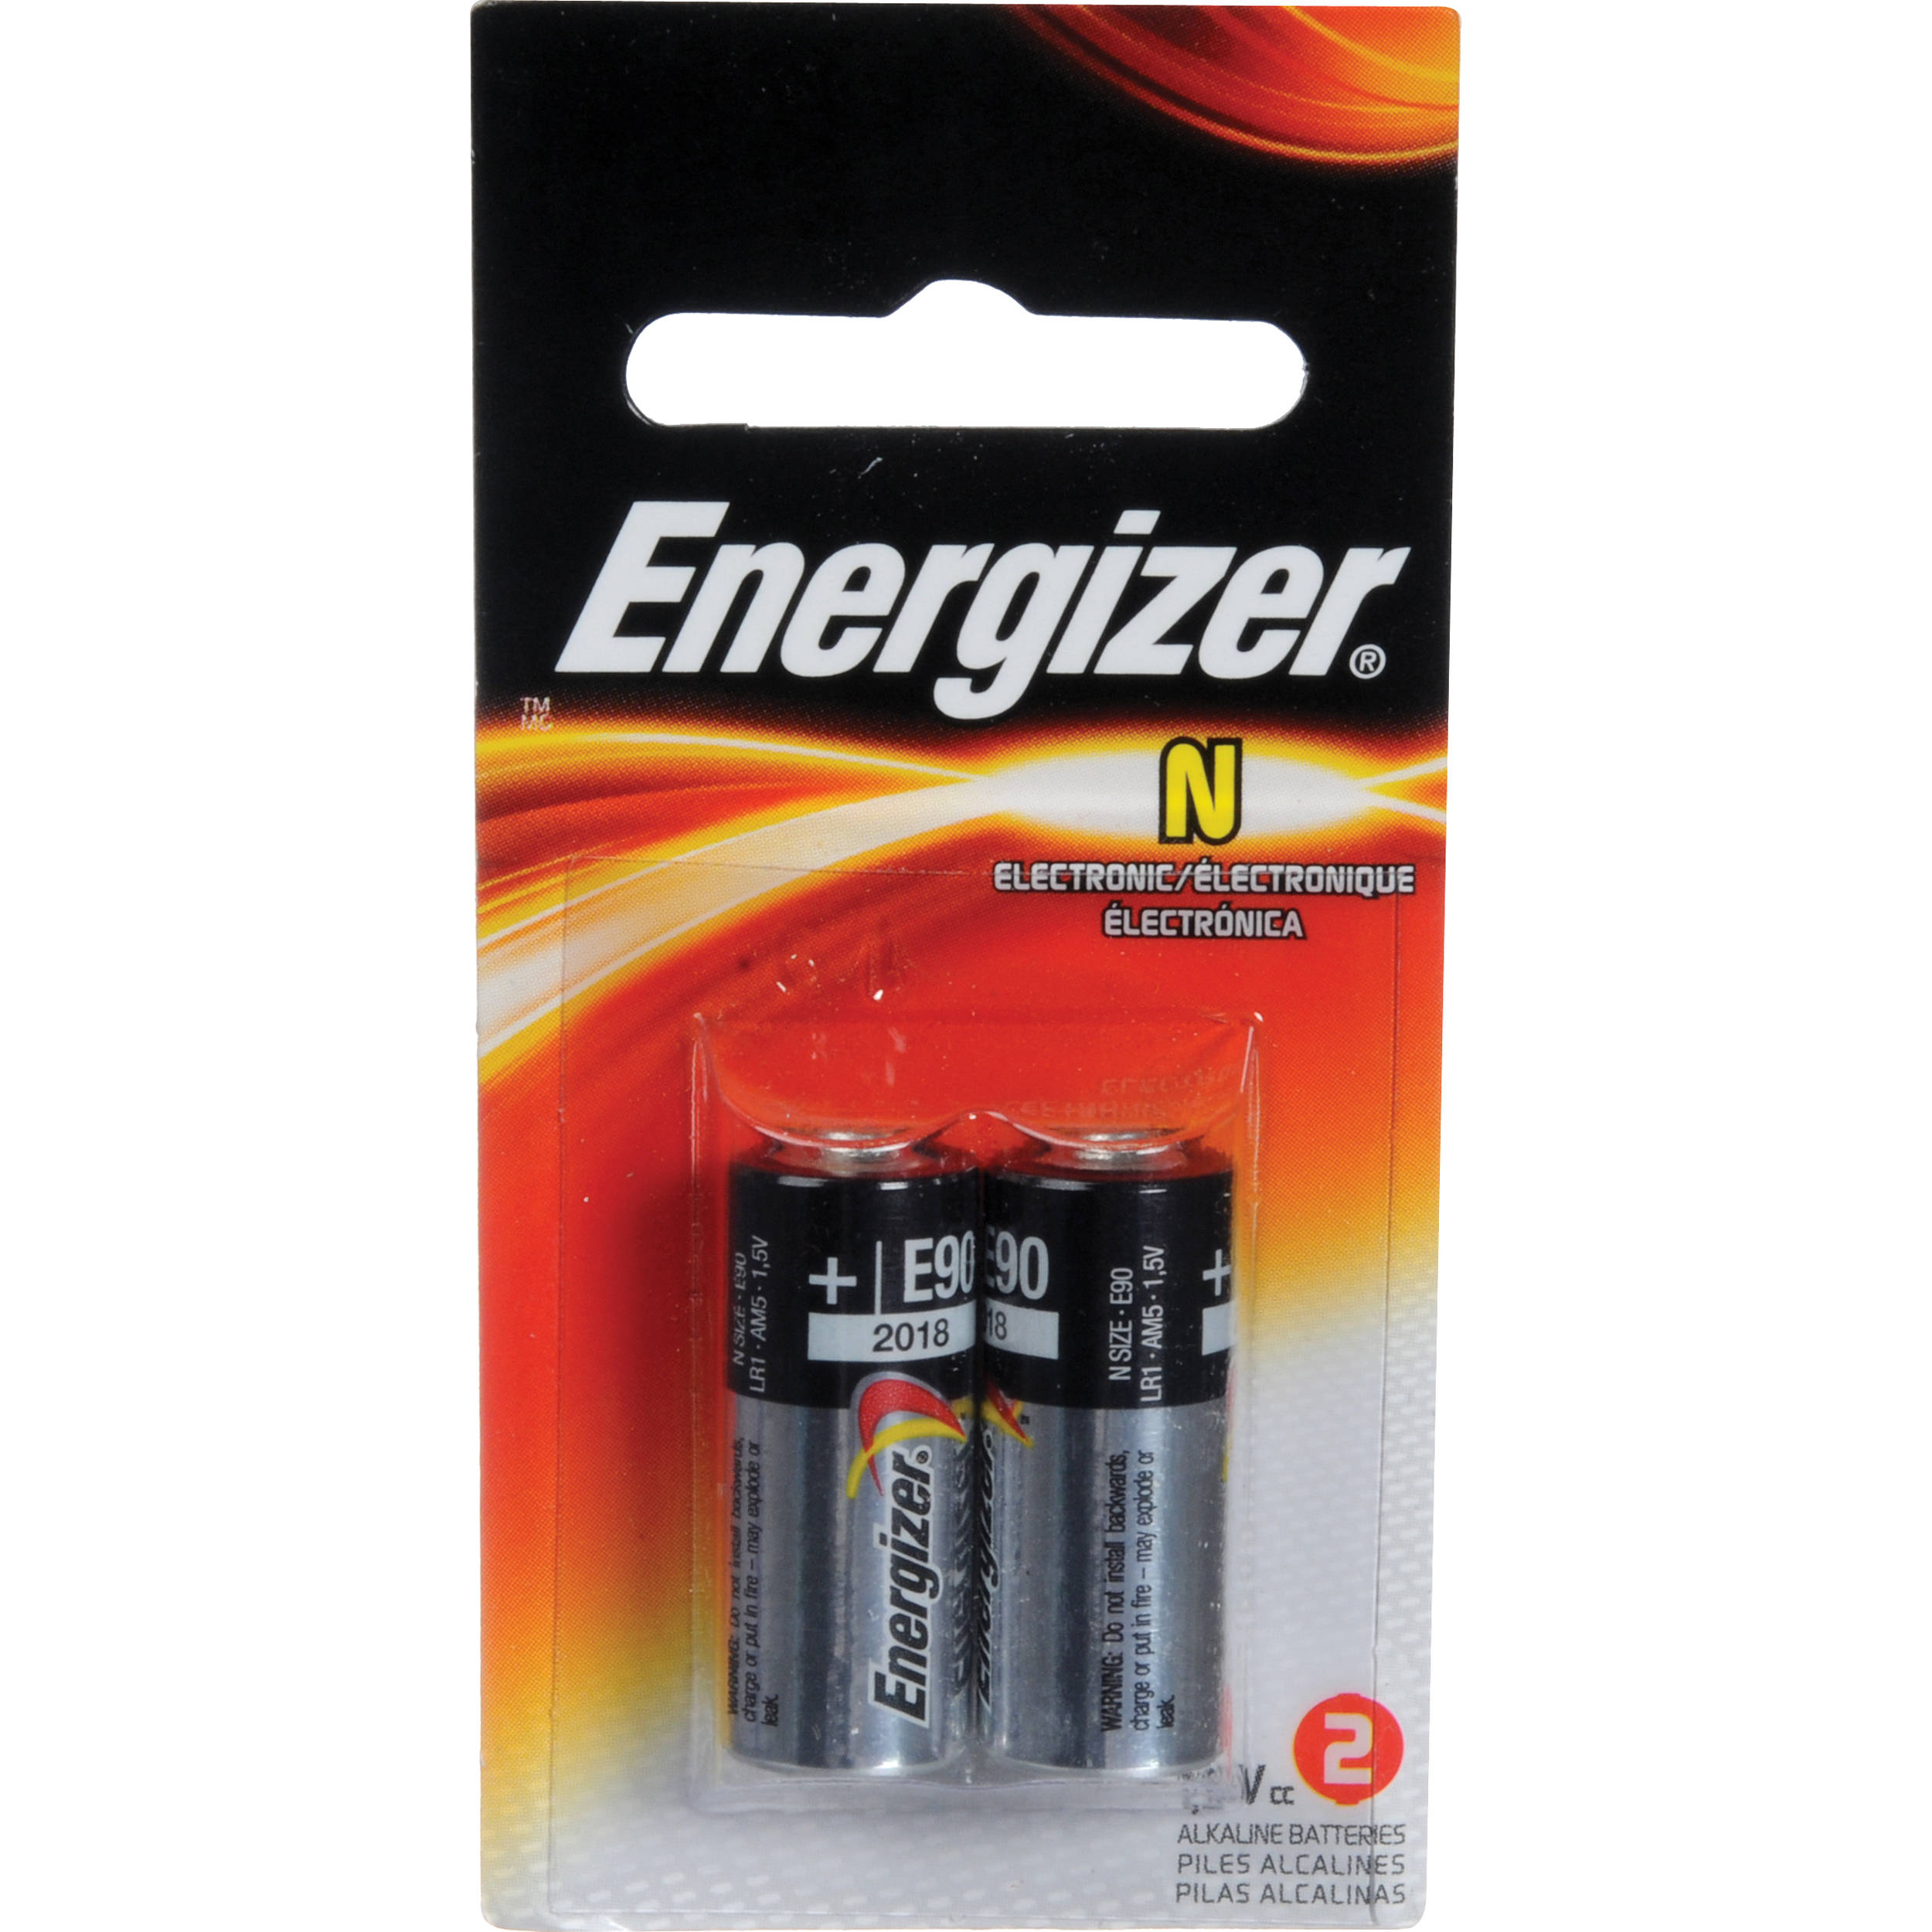 energizer e90 n 1 5v alkaline battery 2 pack n 1 5 2 b h photo. Black Bedroom Furniture Sets. Home Design Ideas